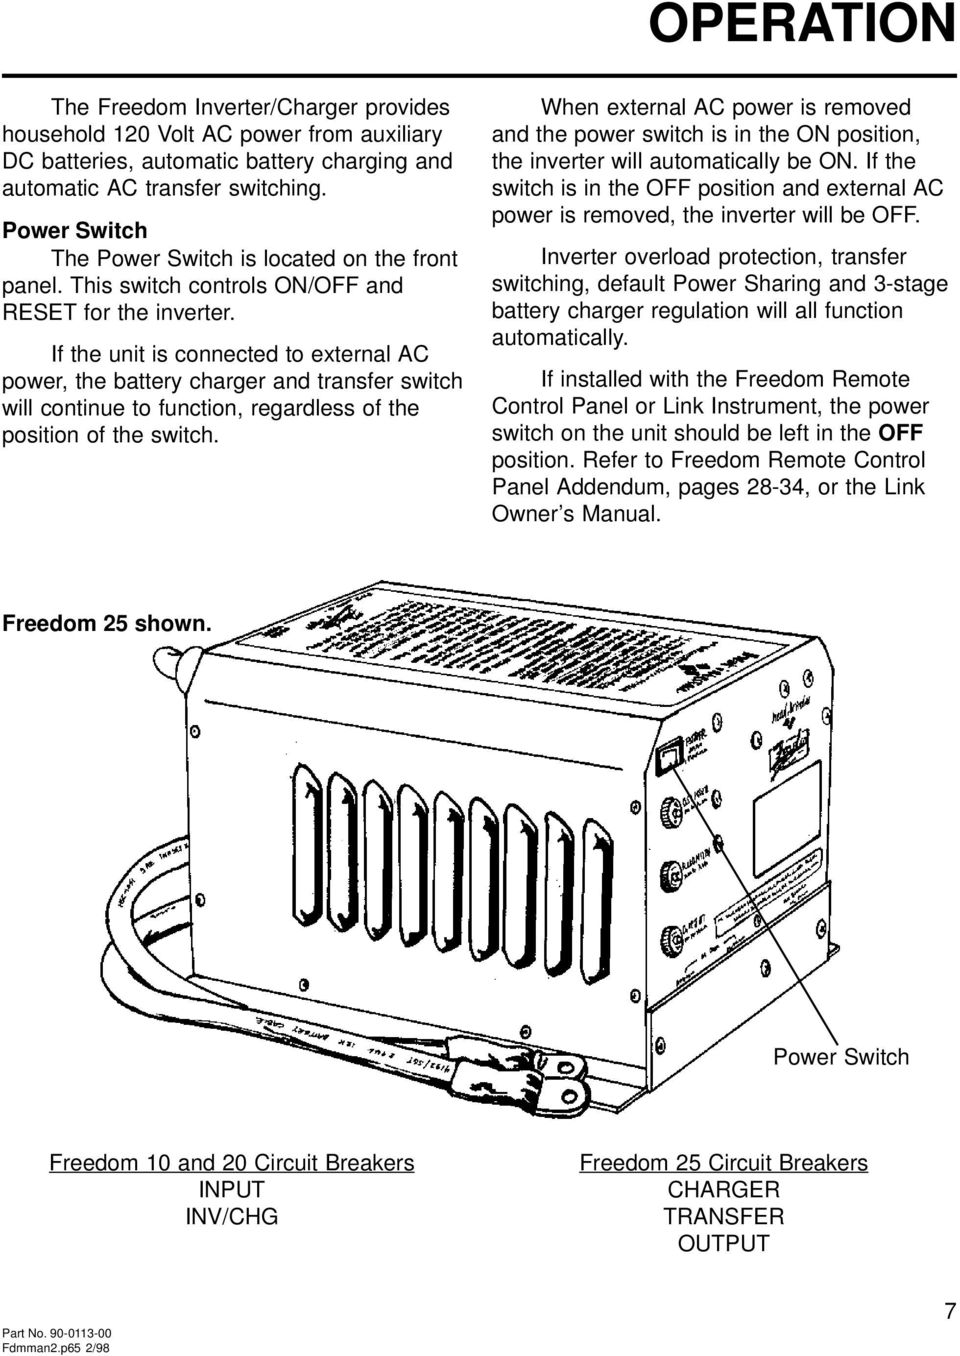 OWNER S MANUAL FREEDOM COMBI TM INVERTER/CHARGERS FREEDOM MODELS 10, 15, 20,  25. A Valley Forge Company. Part No Fdmman2. - PDF Free DownloadDocPlayer.net